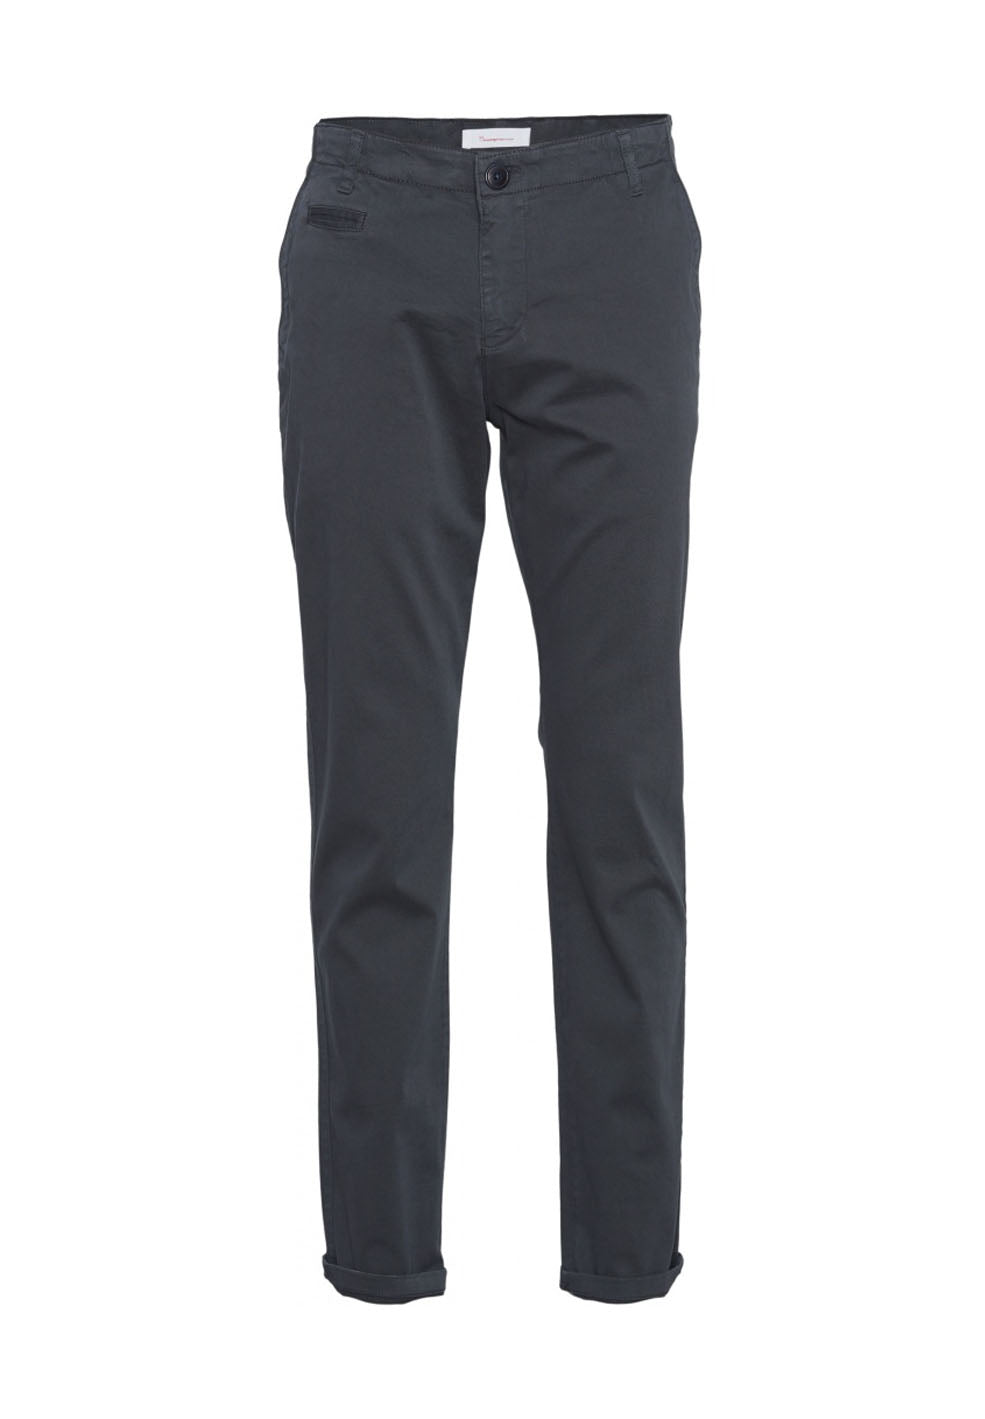 chino chuck stretched twill total eclipse